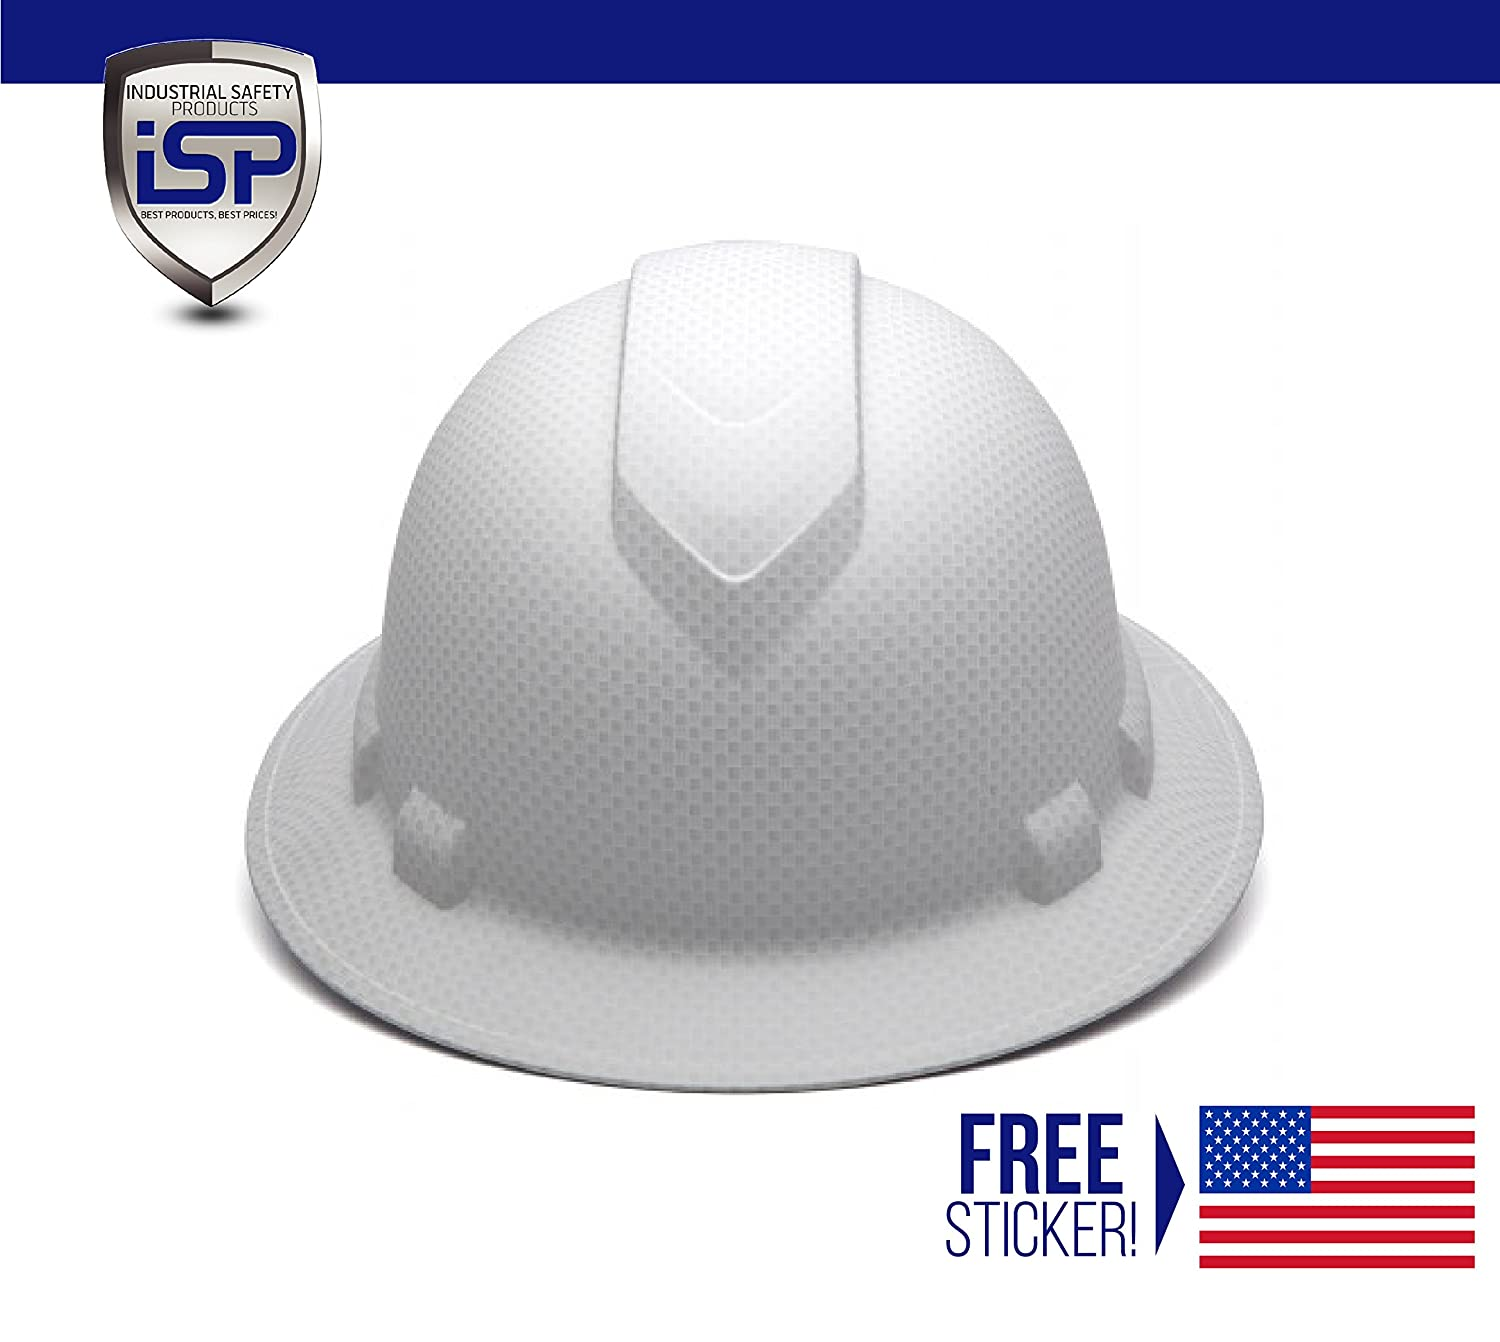 Pyramex Full Brim RIDGELINE Patterned Hard Hat with 6 Point Ratchet  Suspension - Free Sticker Included - - Amazon.com bb03116eddc